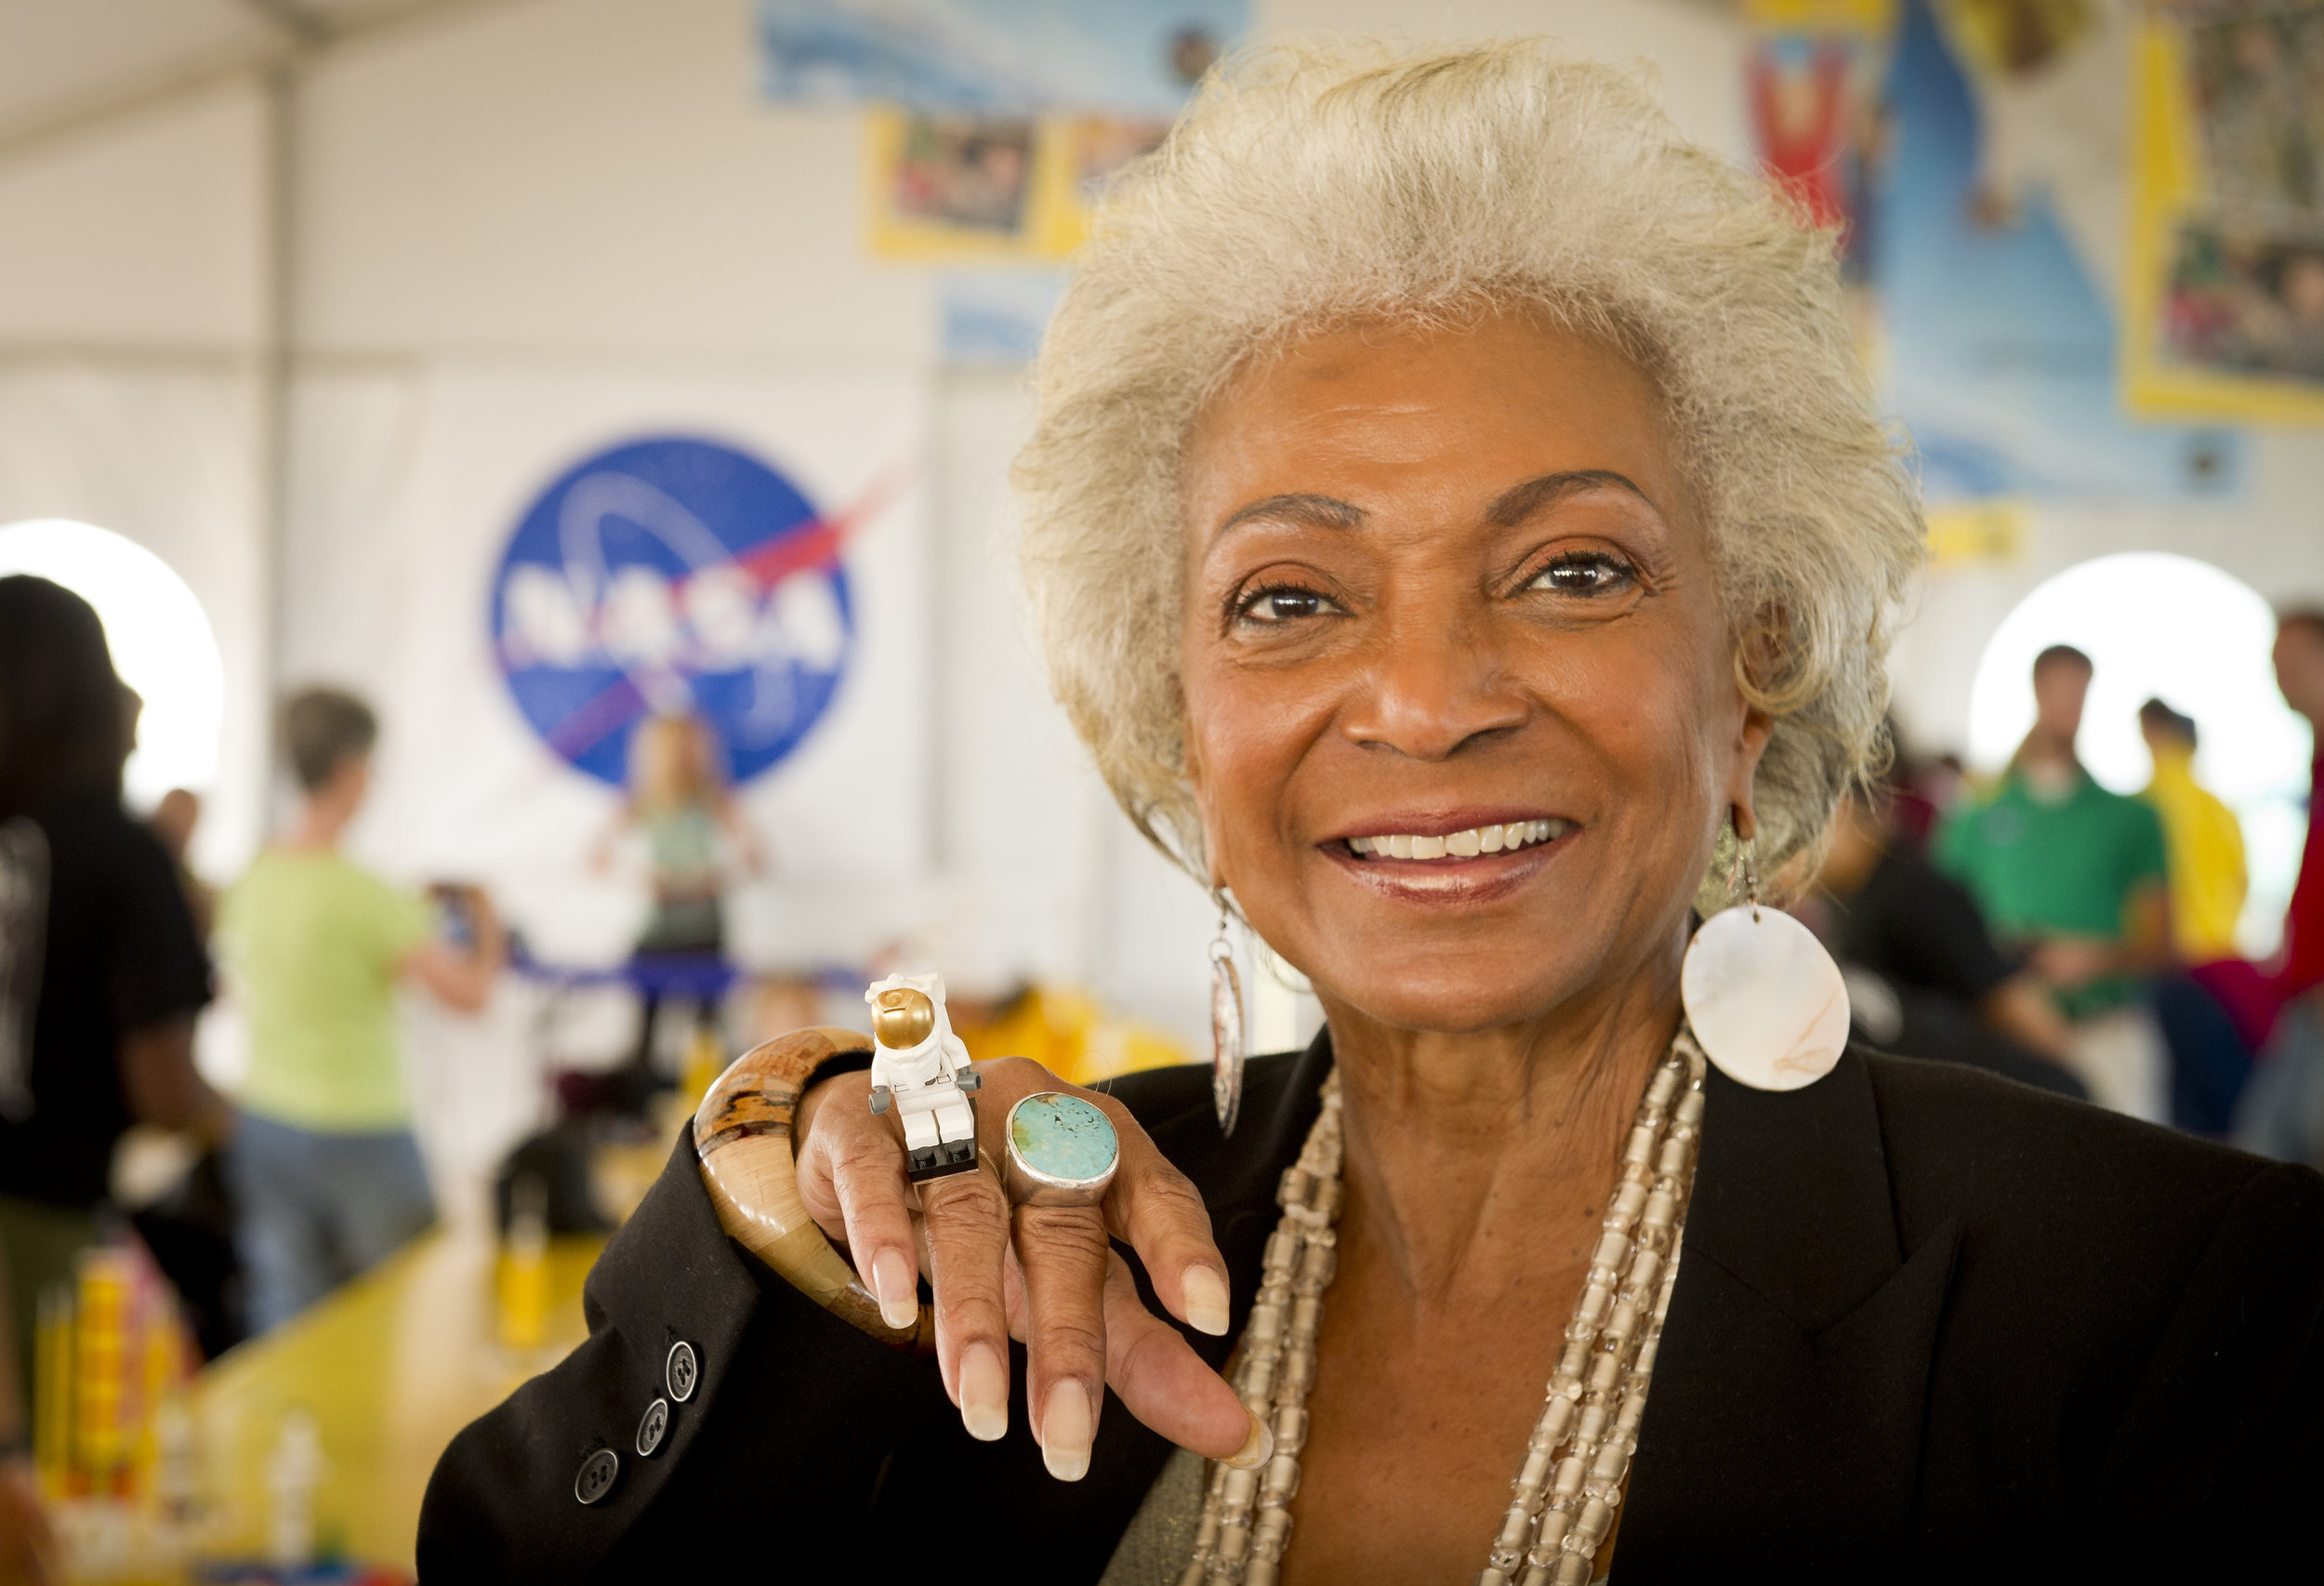 NICHELLE NICHOLS - An accomplished singer who shared stages with greats such as Count Basie in her early years, she put aside her misgivings about science fiction to embrace the historic role of communications officer Lieutenant Uhura in the popular  Star Trek  television series (1966-1969), as well as the succeeding motion pictures. Her grace and beauty provided inspiration to us all reaching for the stars and finding a hand like ours guiding us through the cosmos.